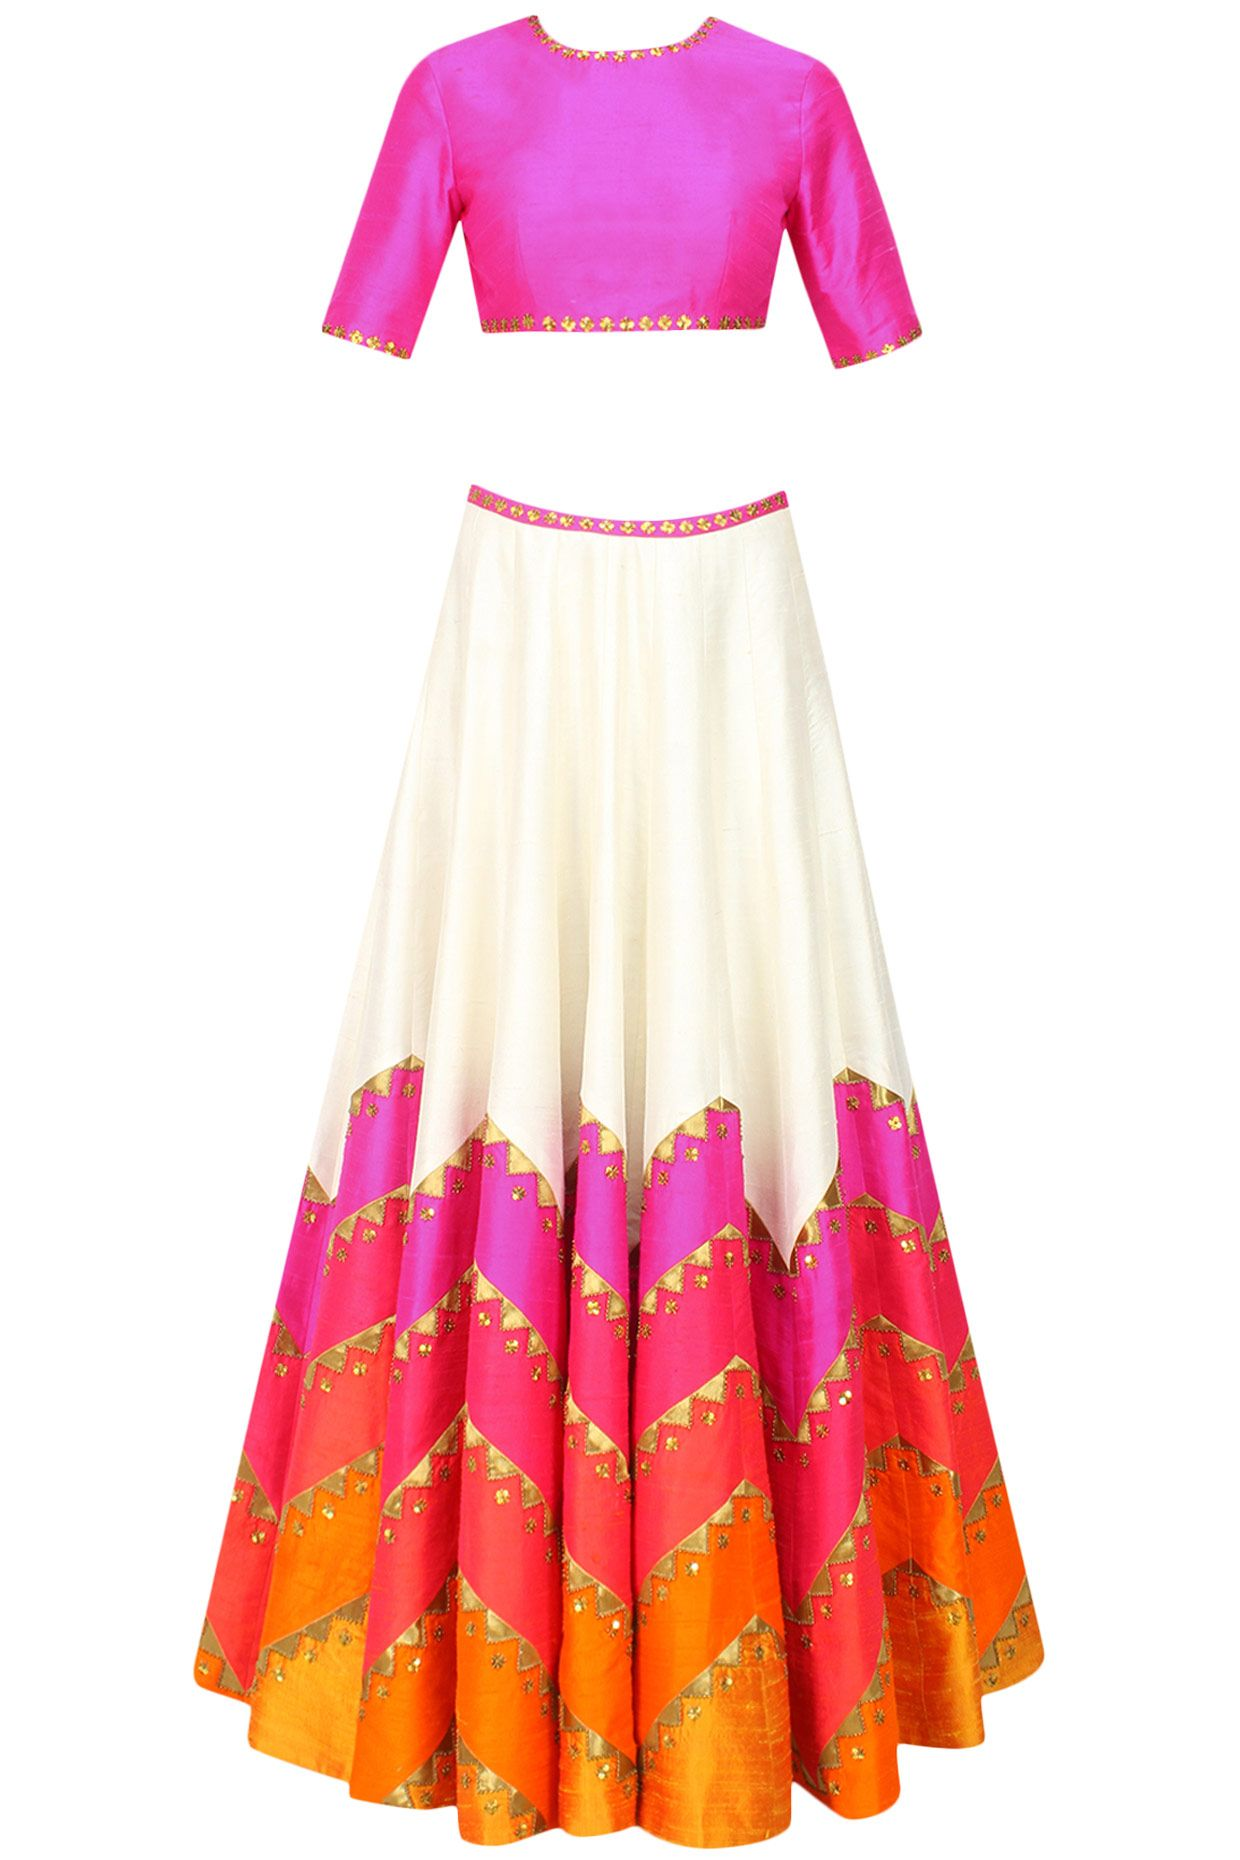 Priyal Prakash presents Ivory and shades of red and pink sequins embroidered lehenga set available only at Pernia's Pop Up Shop.